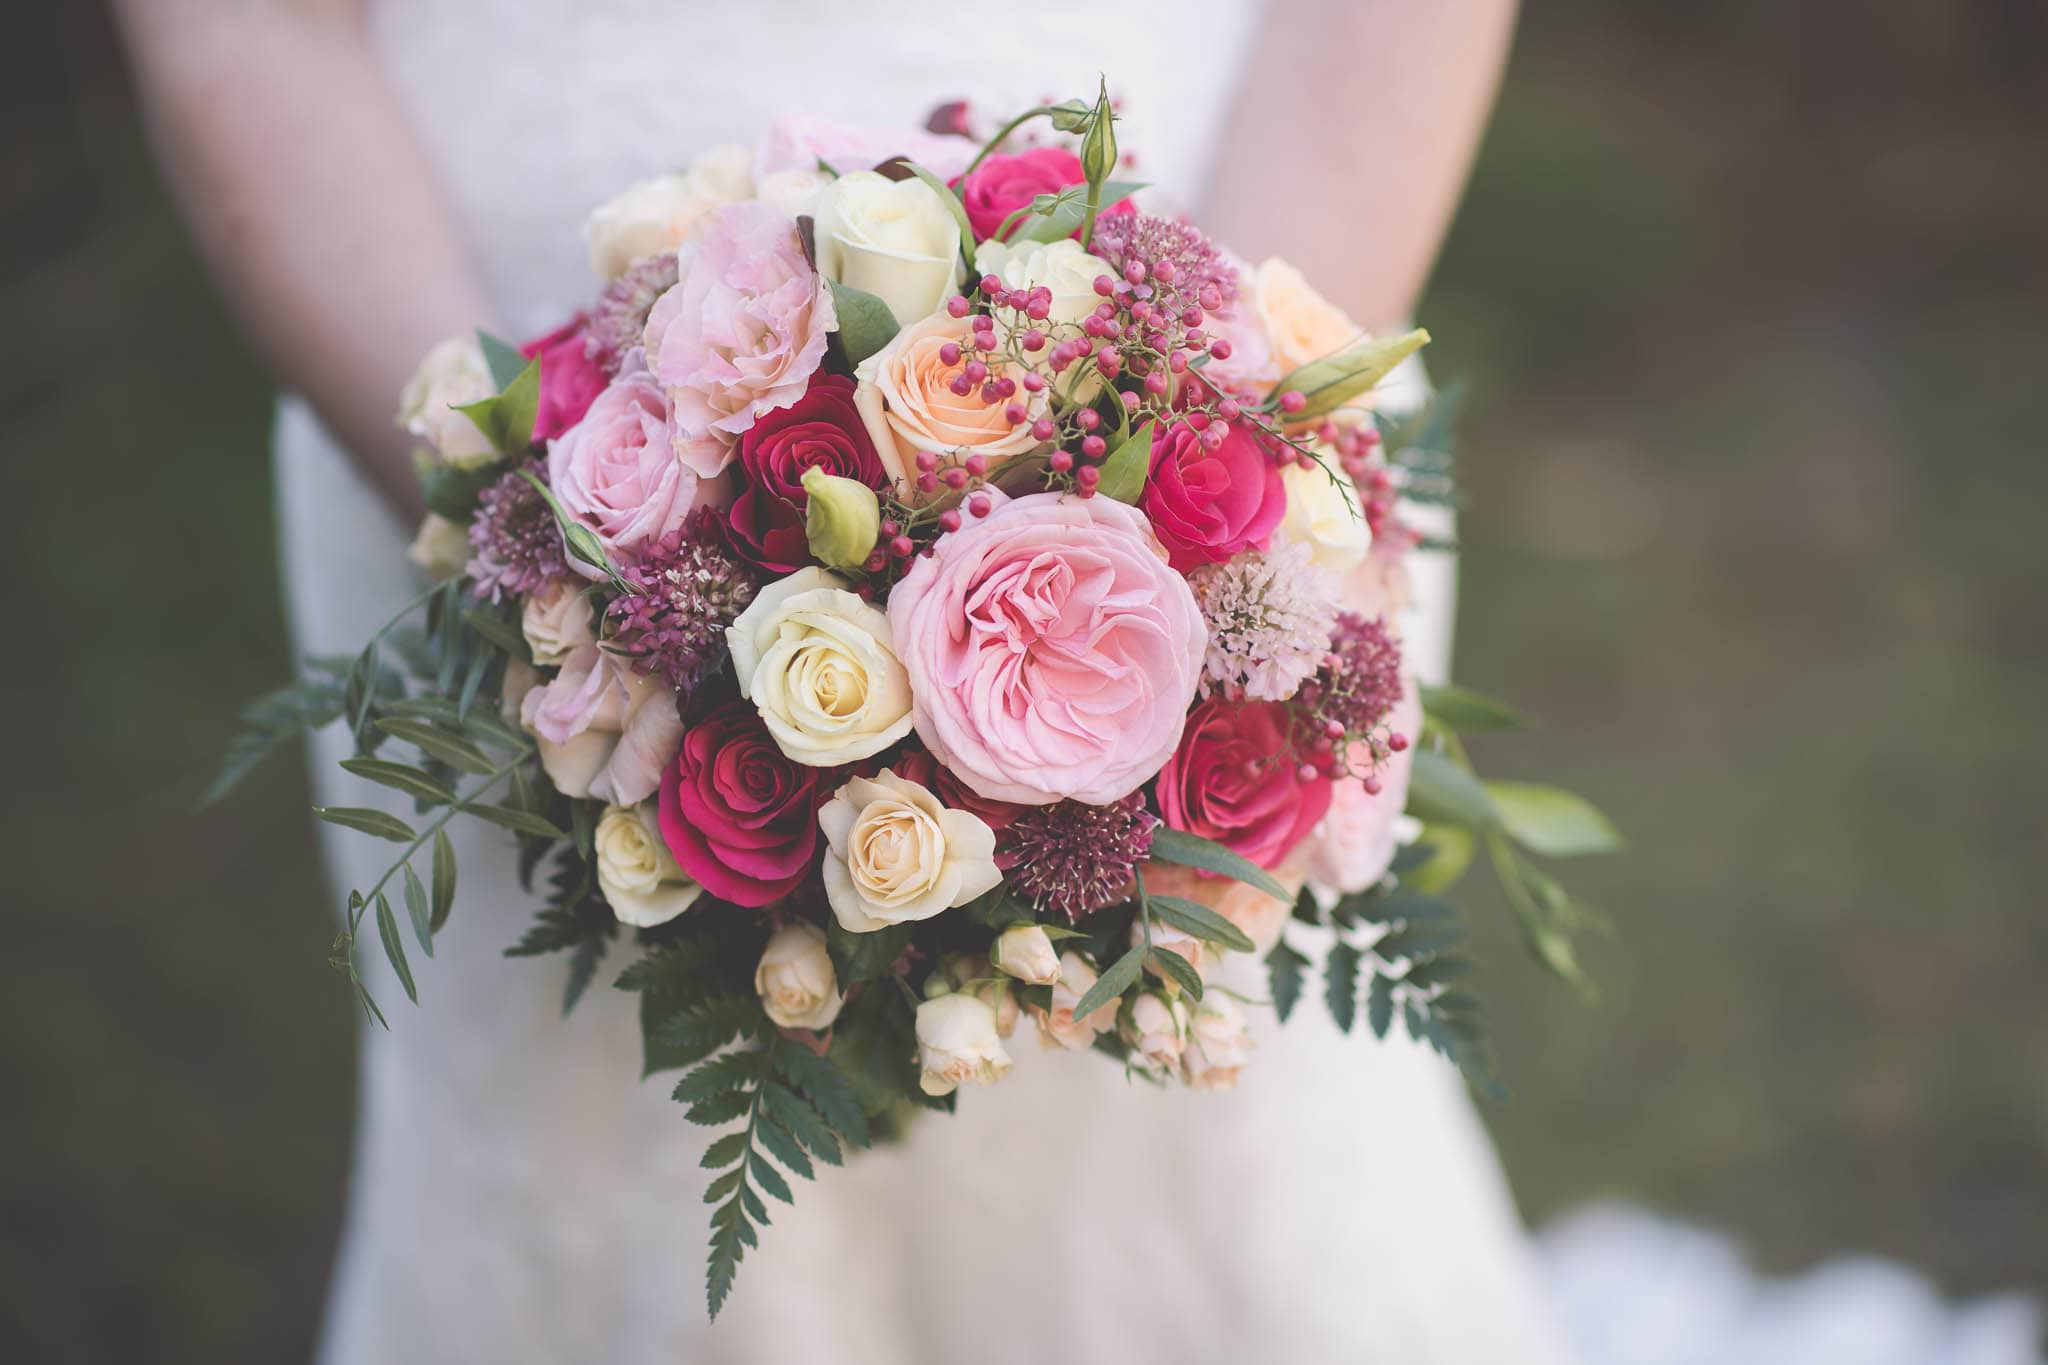 Melbourne wedding photography of the bride's bouquet